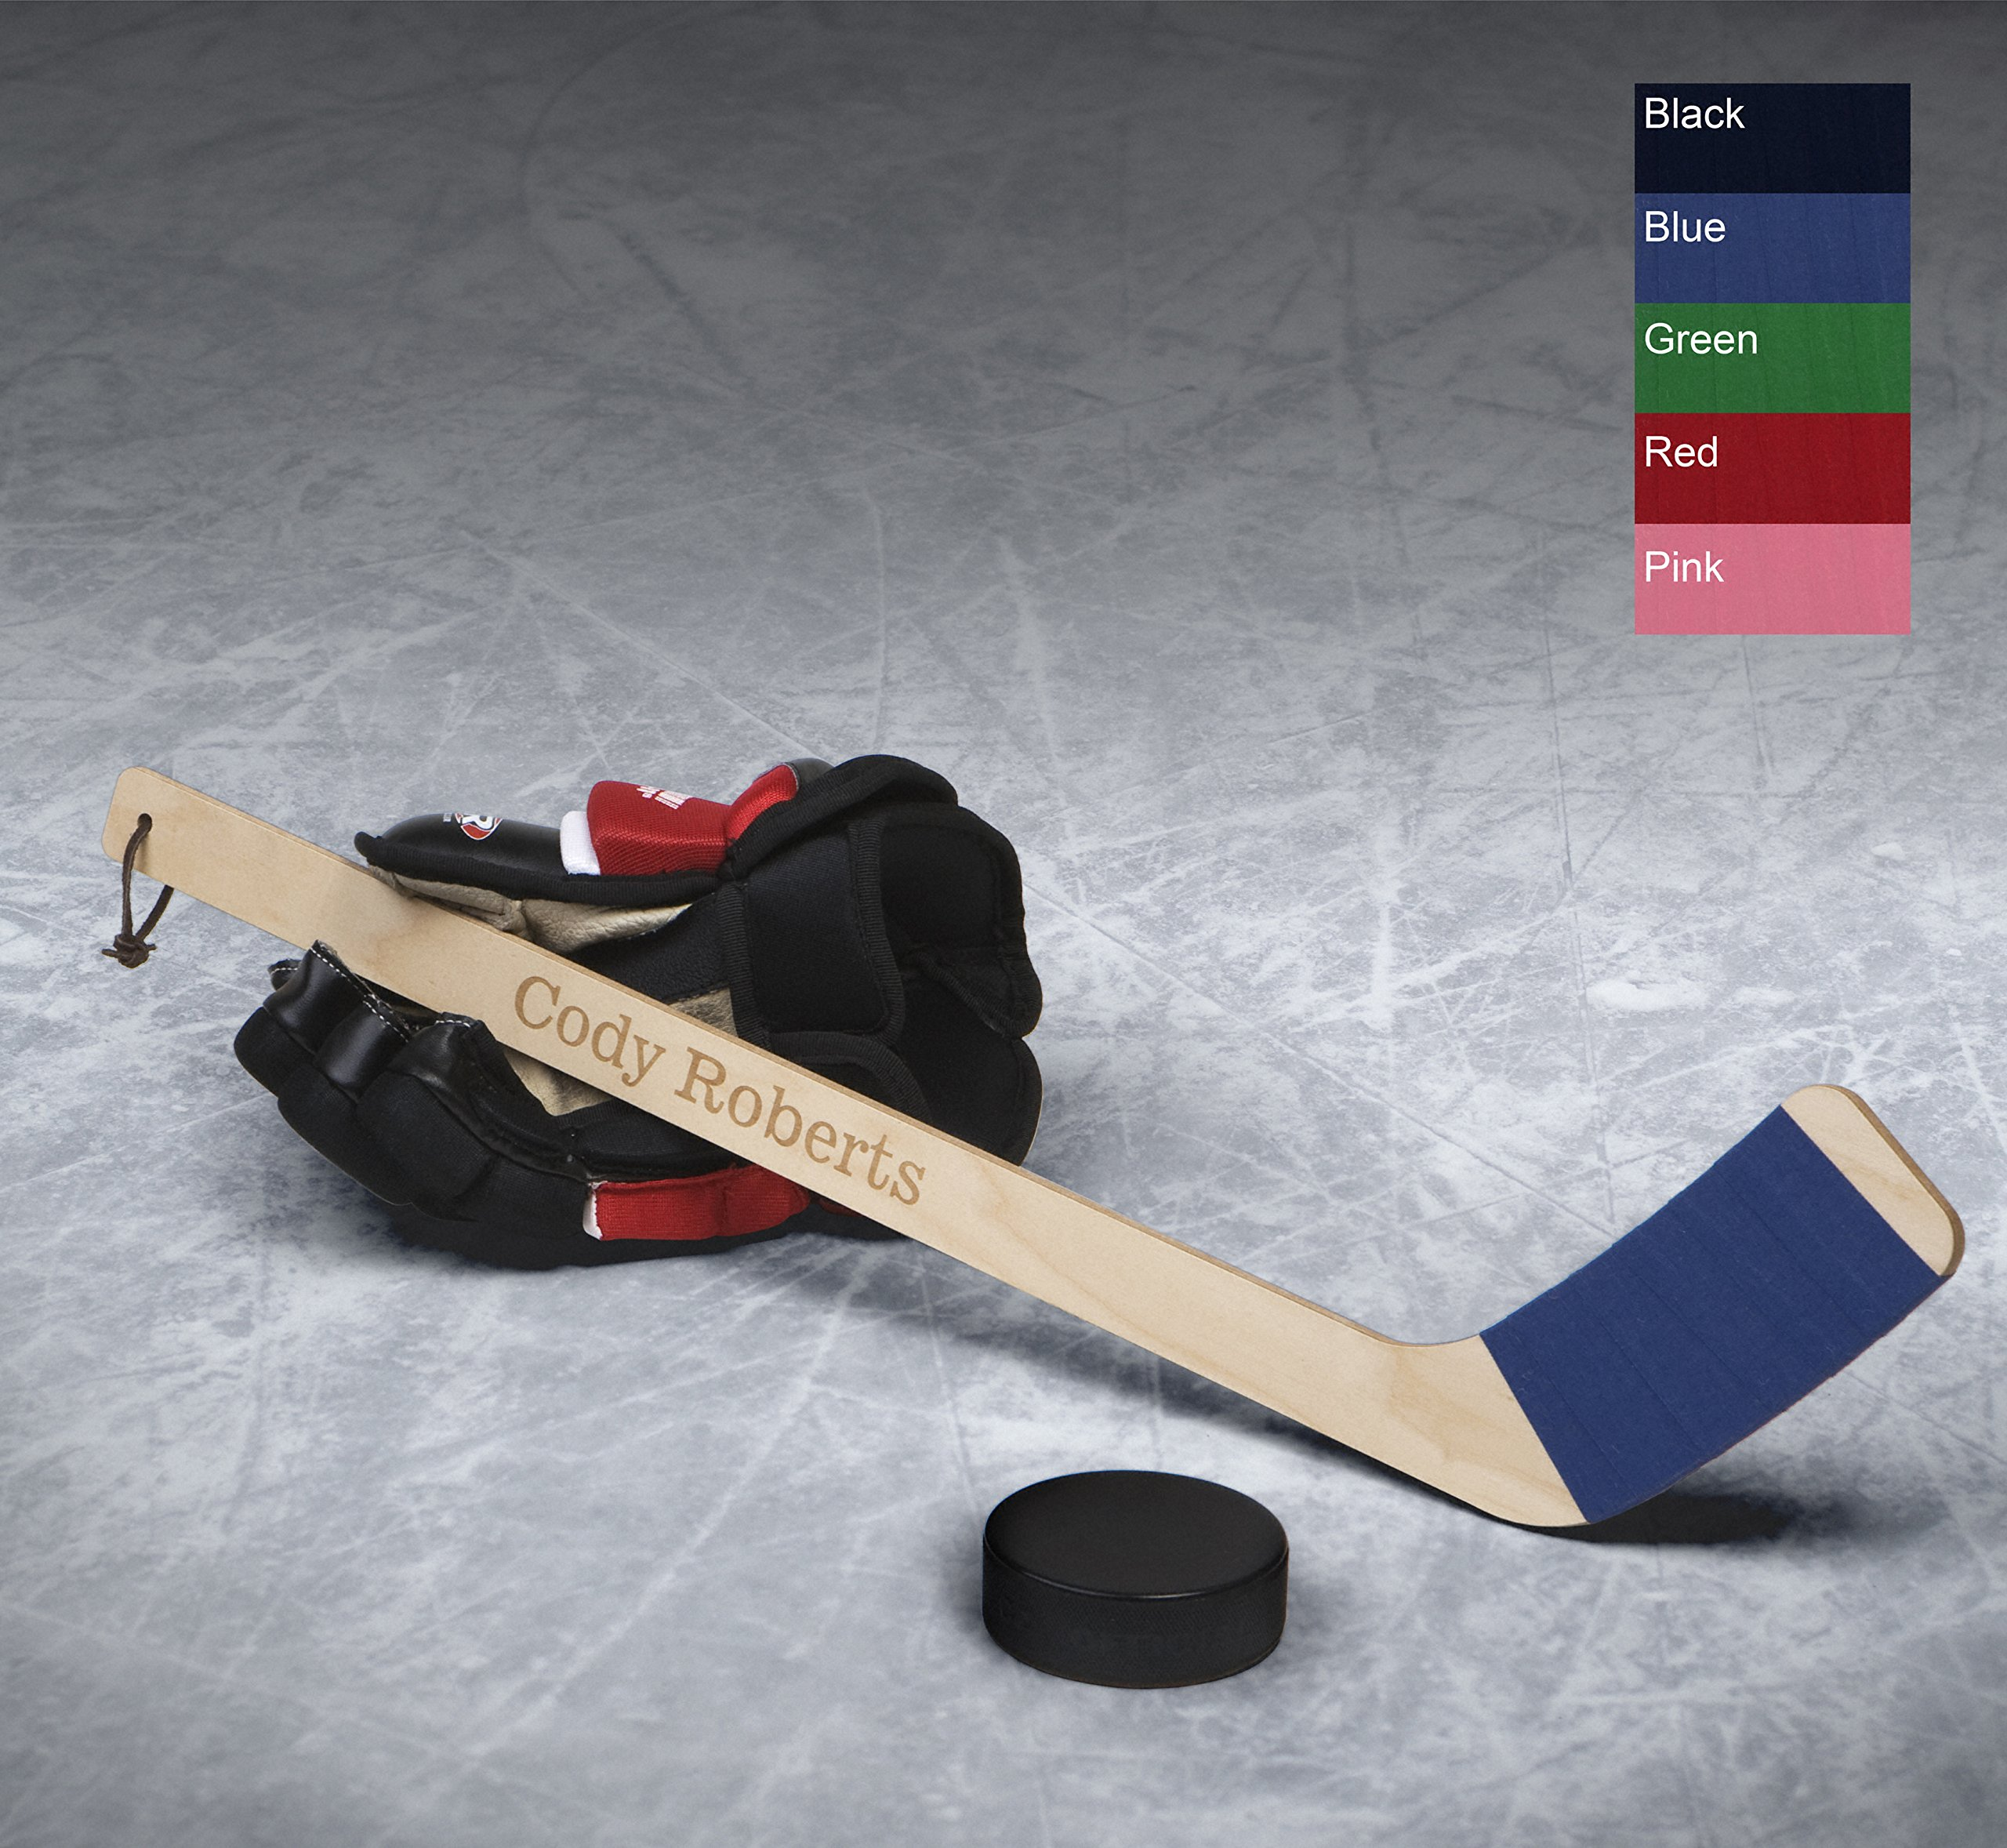 Personalized Hat Trick Mini Hockey Stick by A Gift Personalized